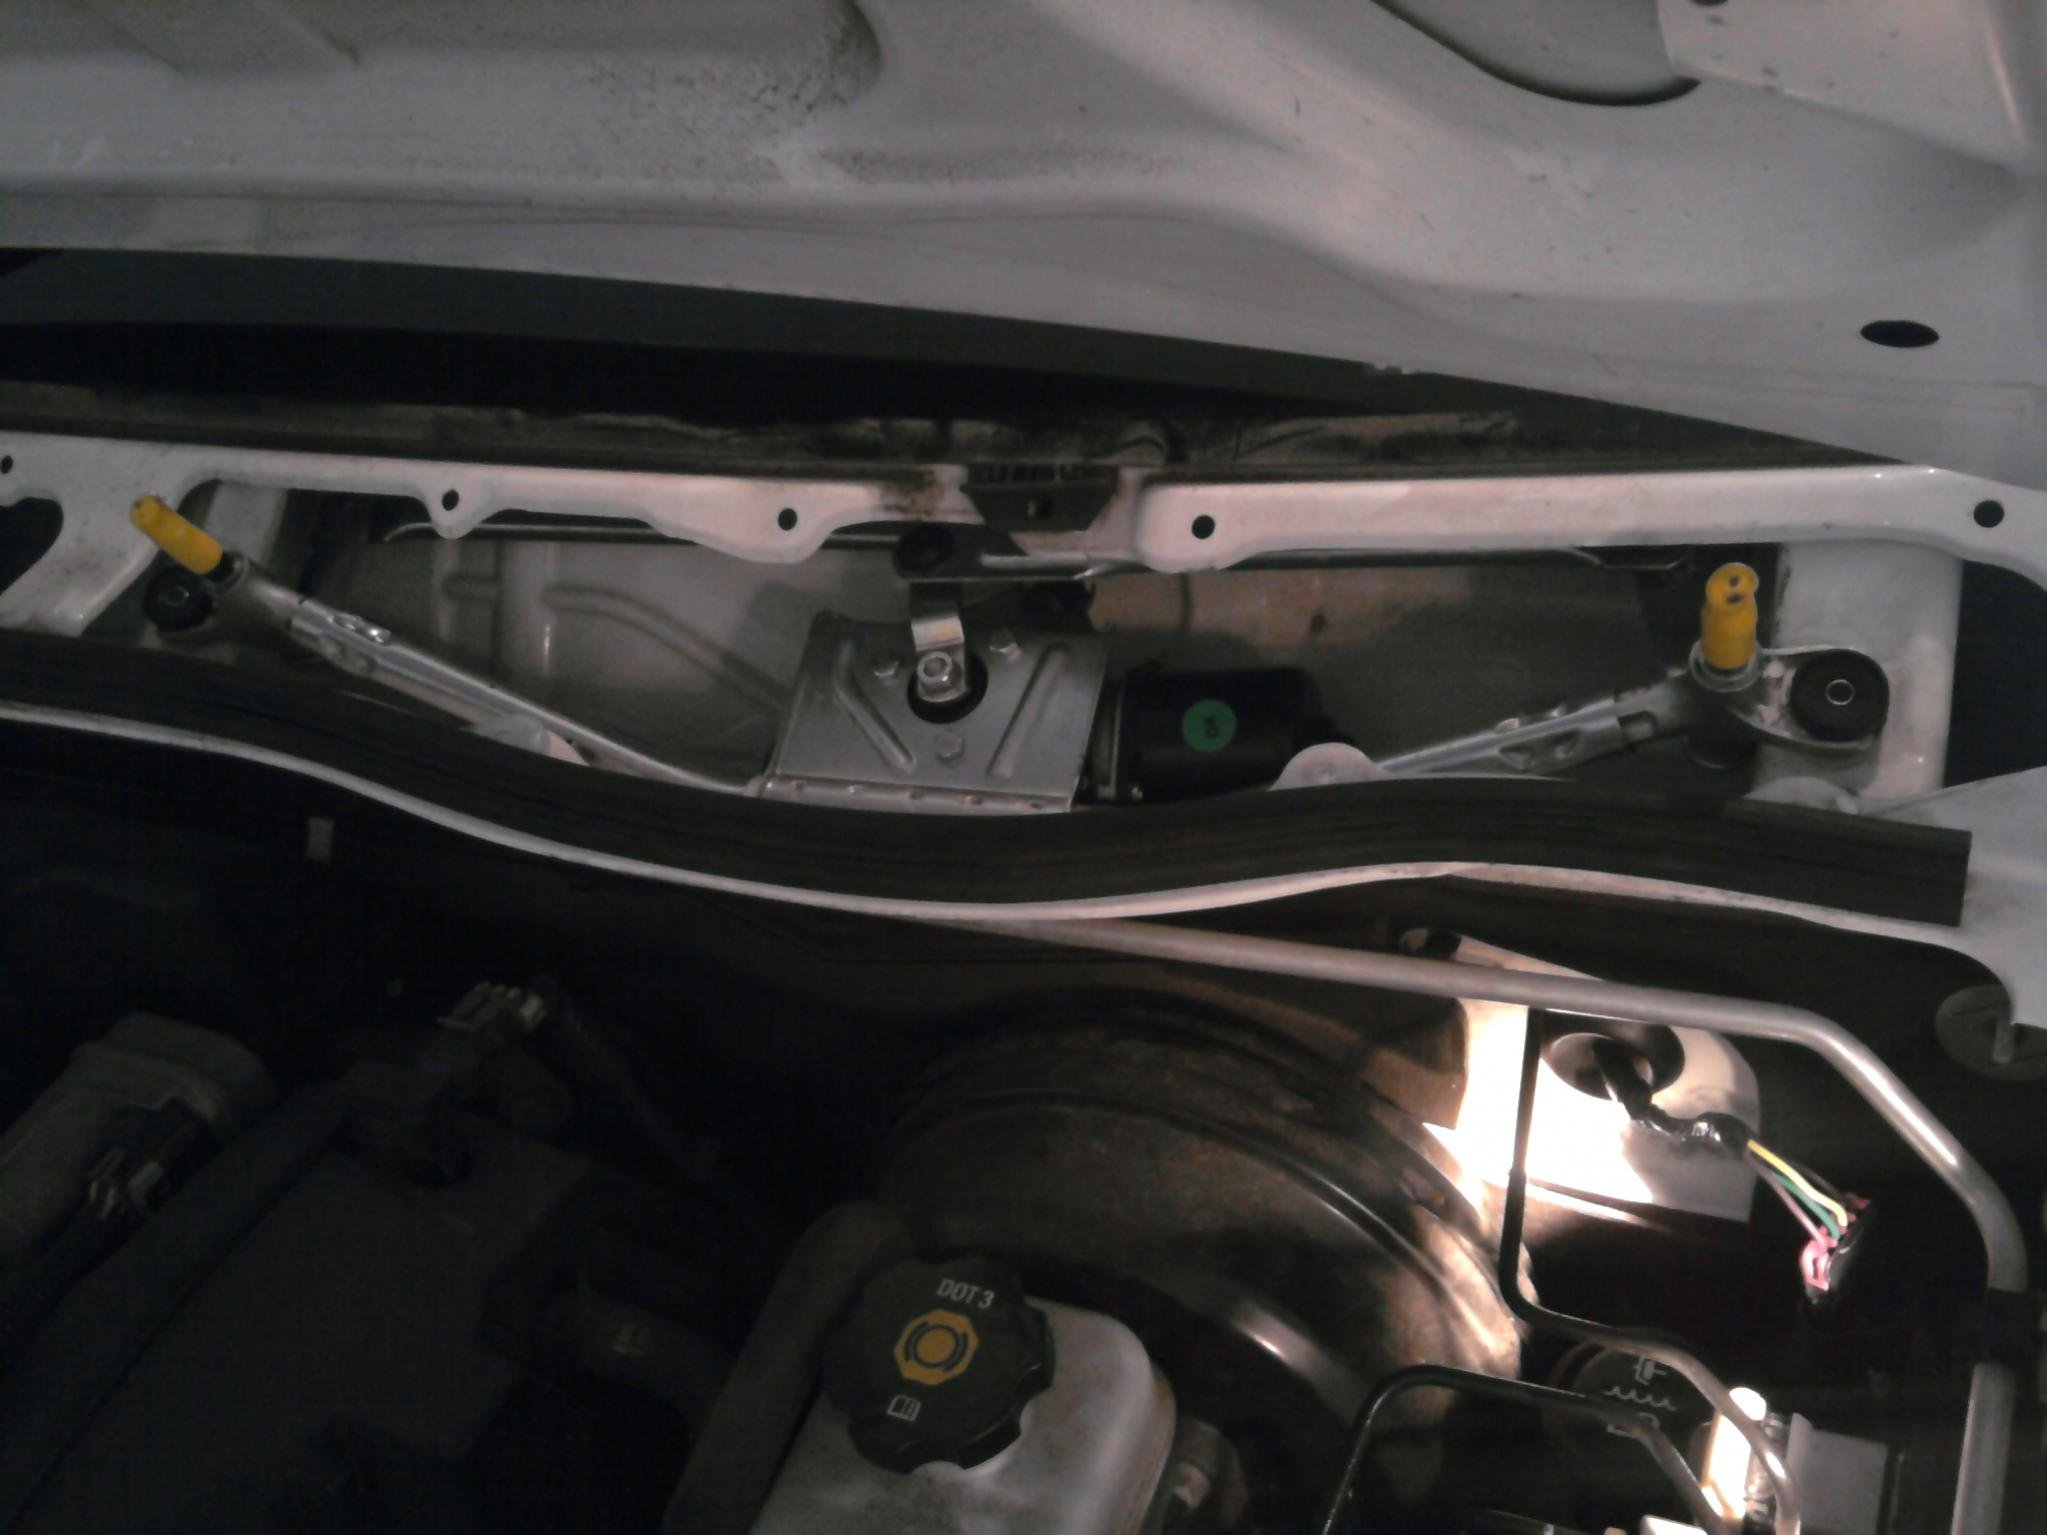 Installed New Wiper Motor And Linkage Chevrolet Colorado Gmc Canyon Forum